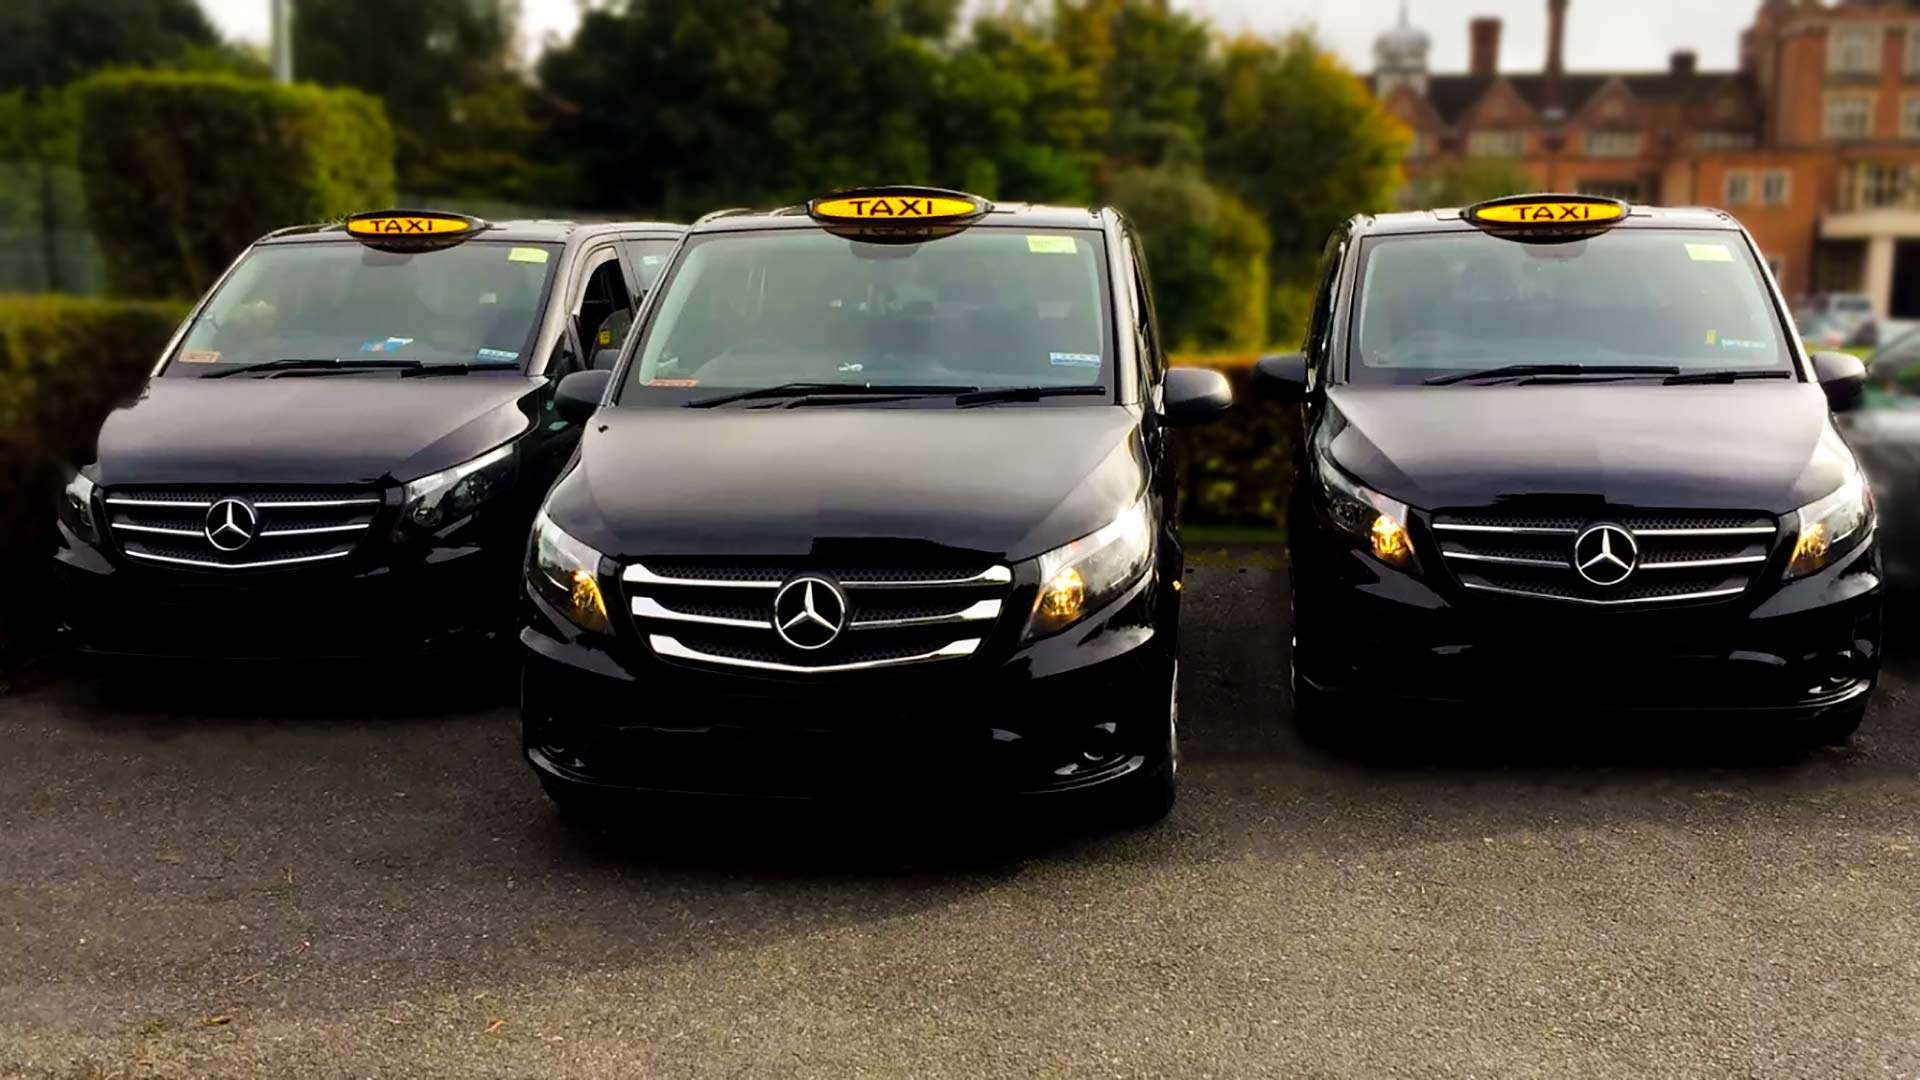 Croydon Prestige Taxis ready to take you to Gatwick, Heathrow, London City, Luton and Stansted - or wherever you want!